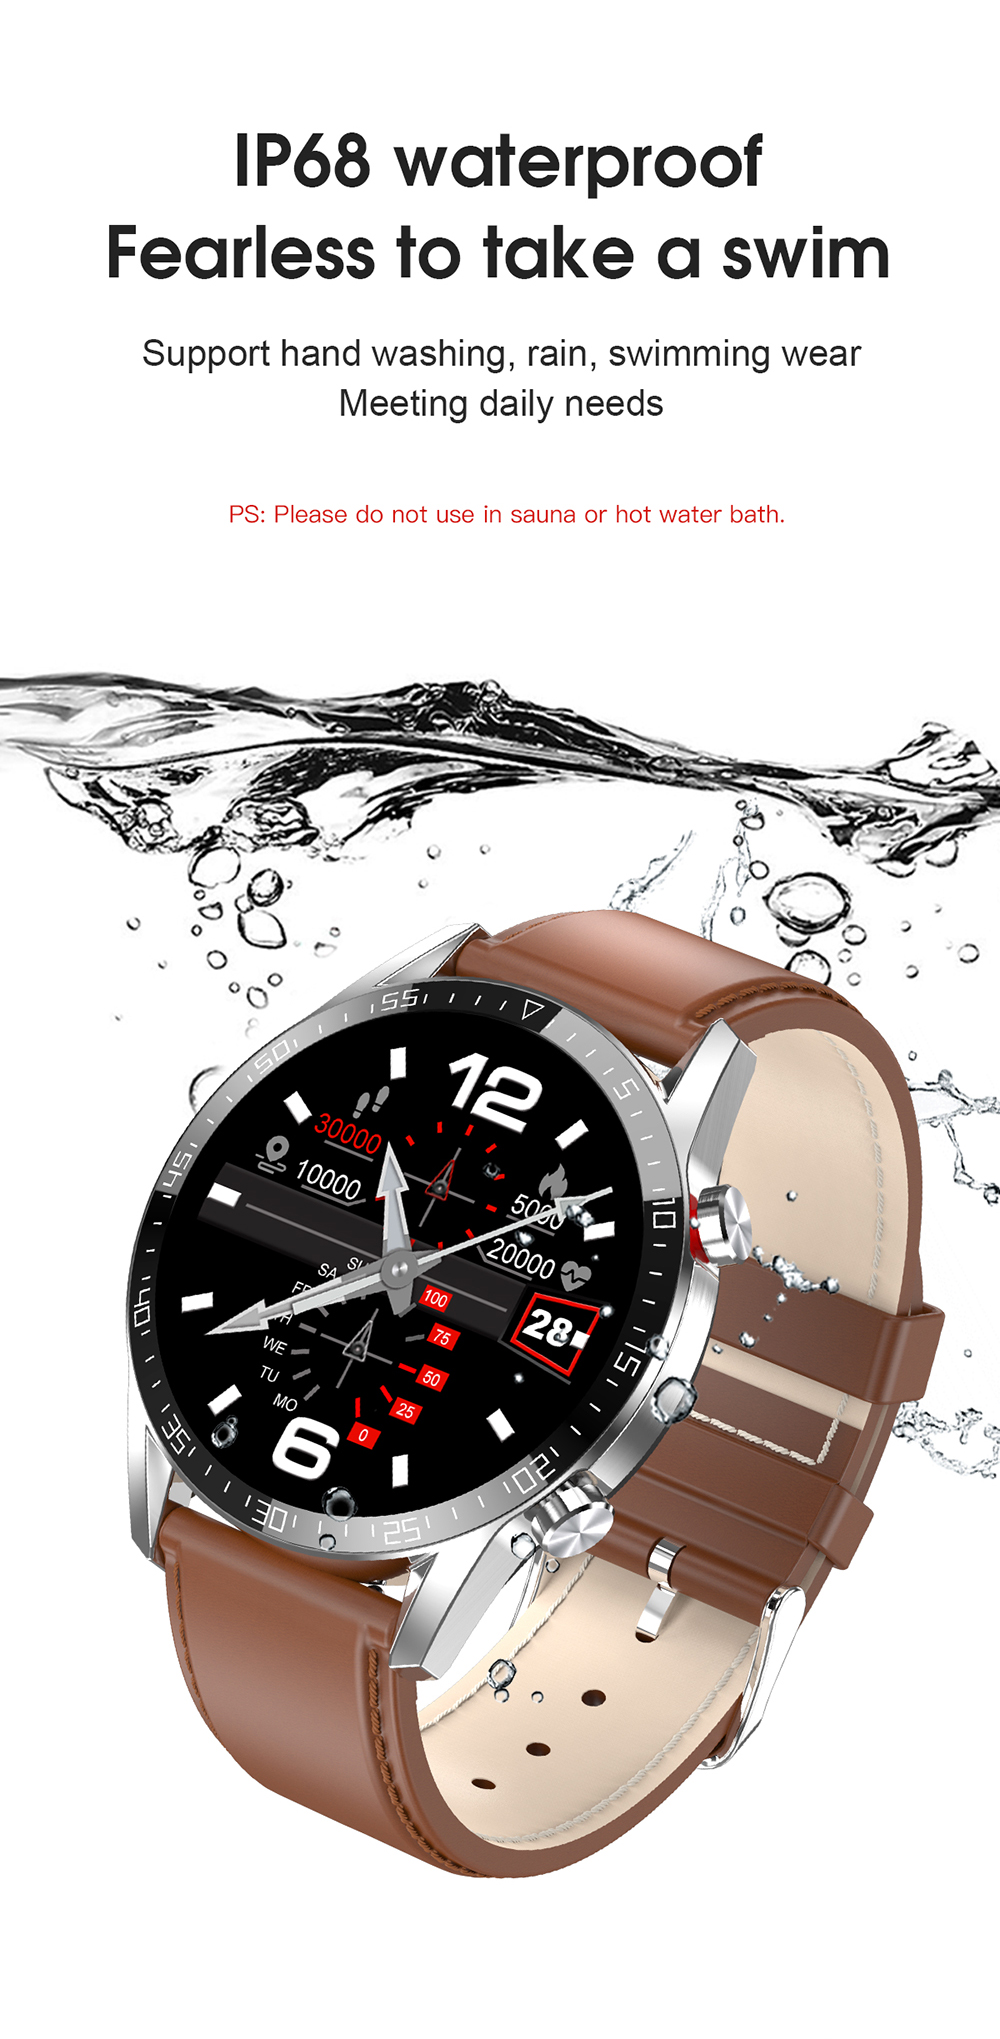 Hf7eb475f0f8f467fb1a55faf97dc11c97 Reloj Inteligente Hombre Smart Watch Men 2020 Android IP68 Smartwatch Answer Call Smart Watch Man For Huawei Android Apple Phone